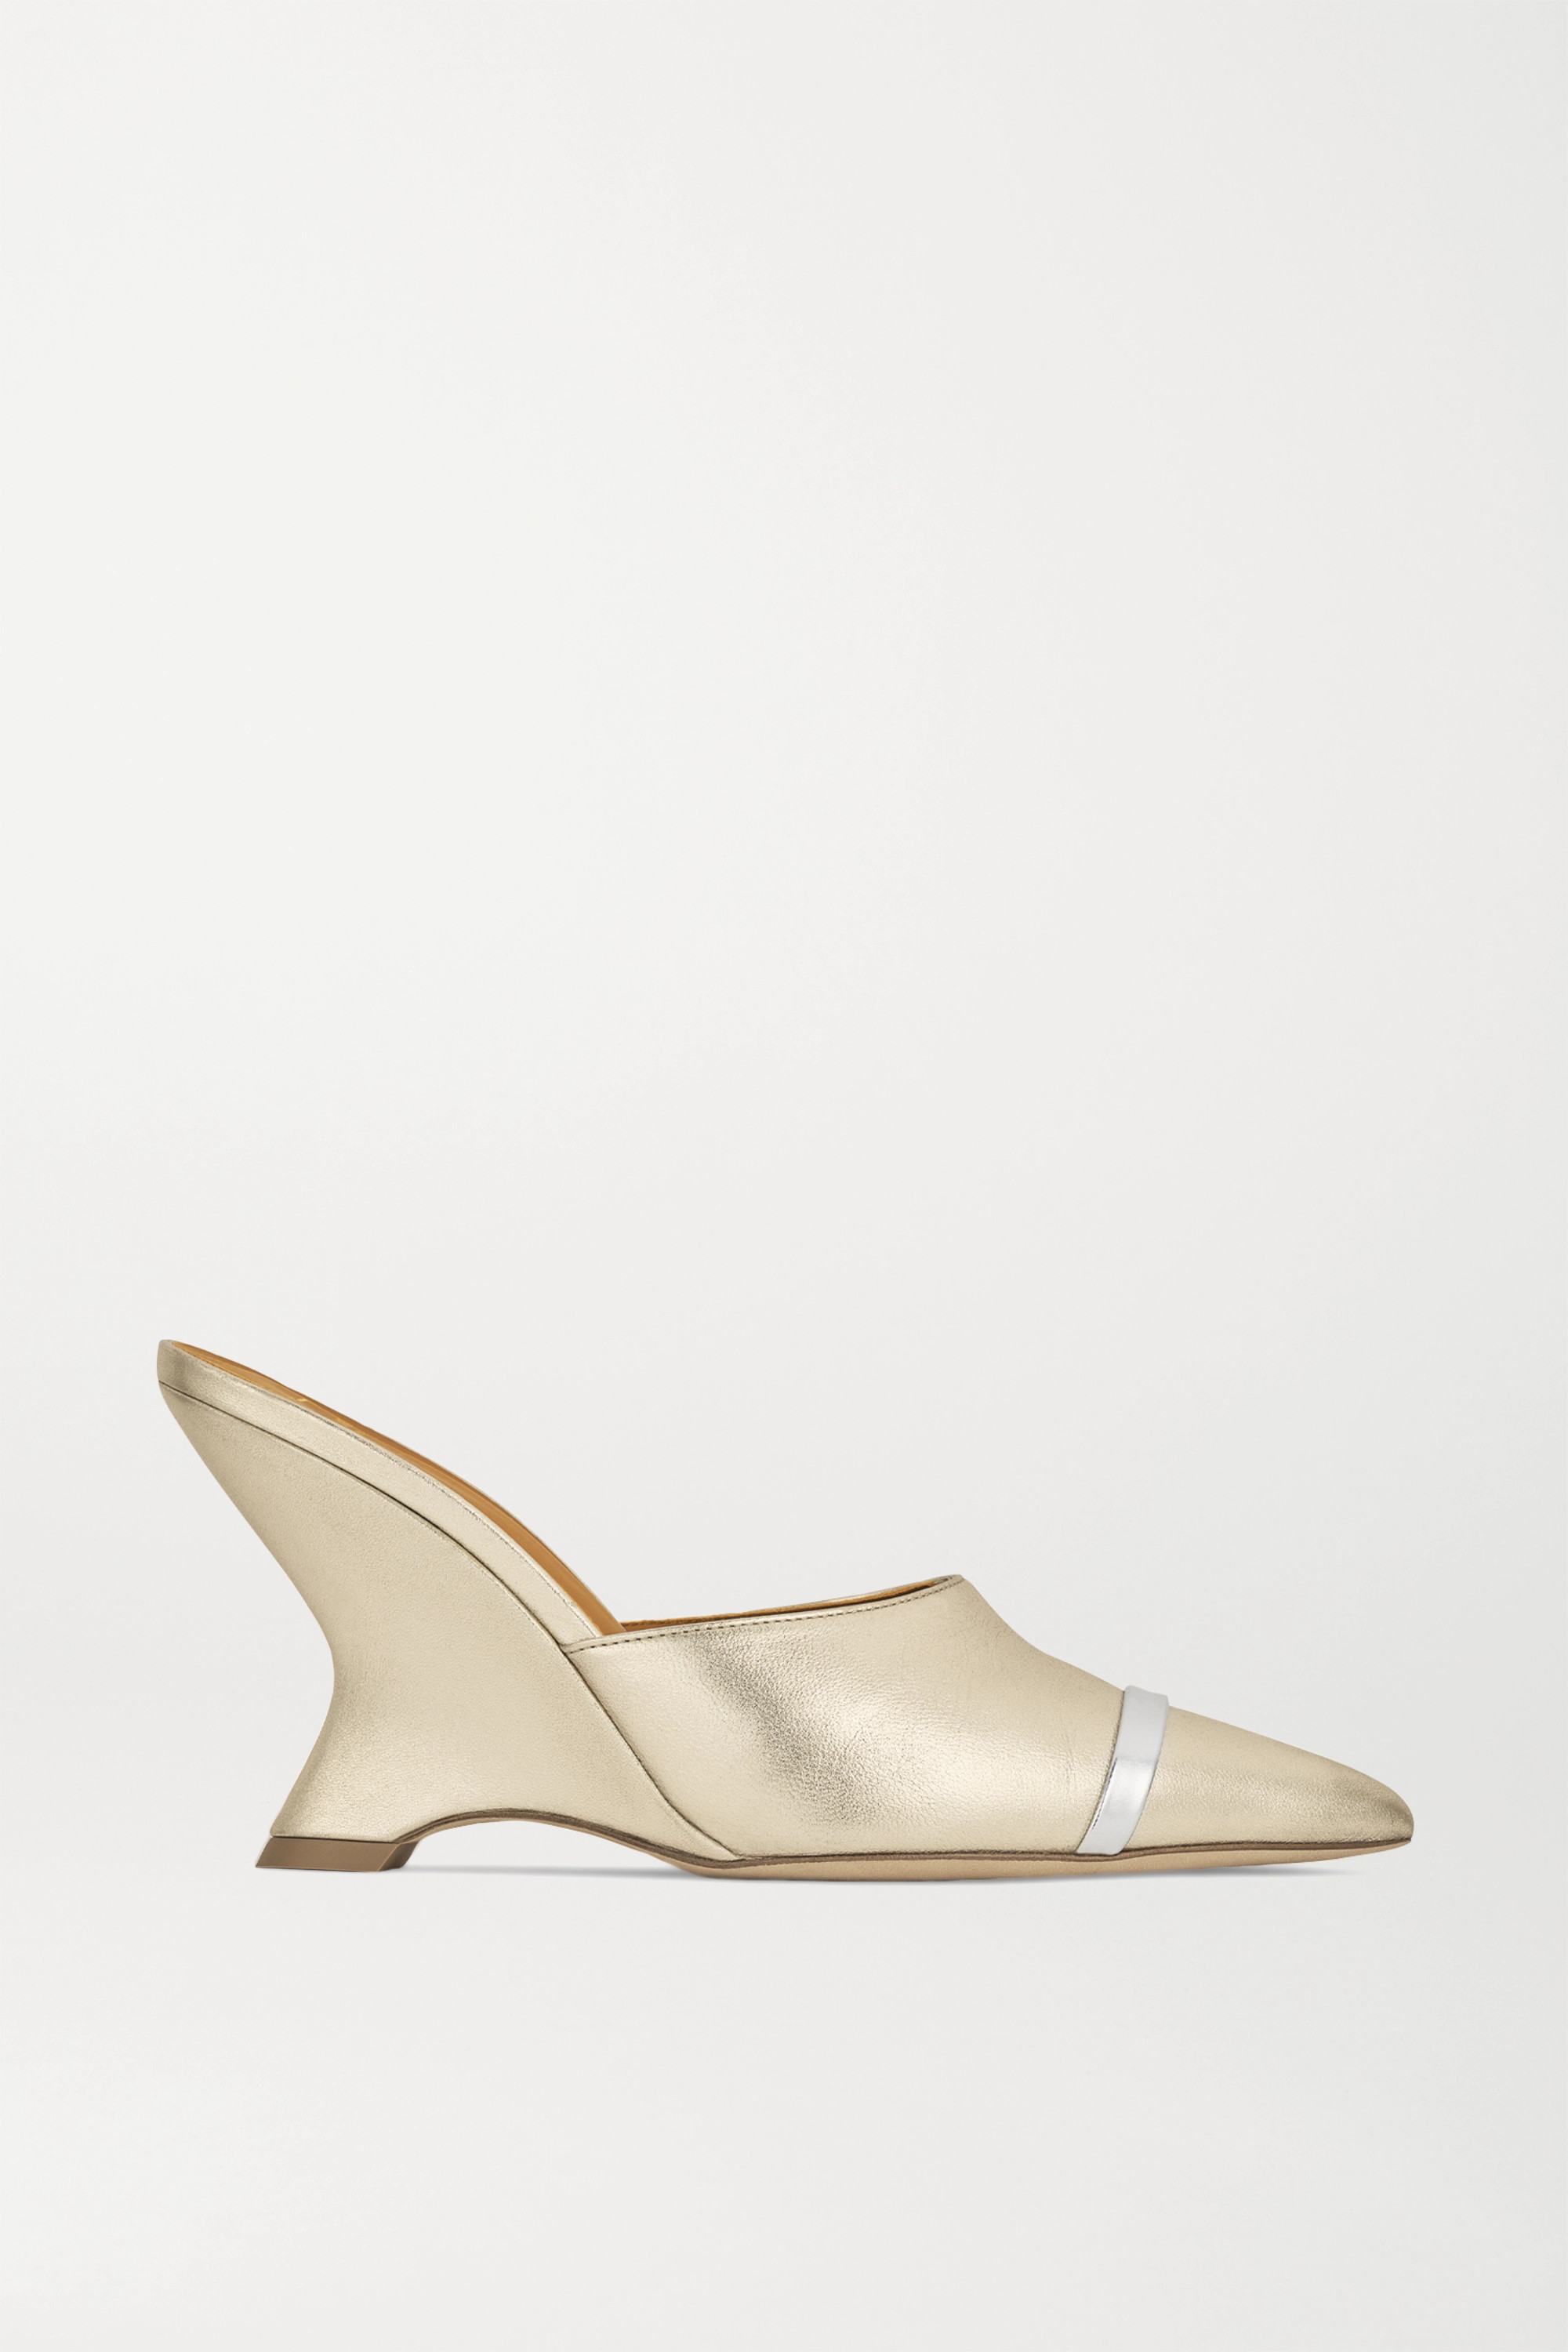 Malone Souliers Marilyn 80 metallic leather mules